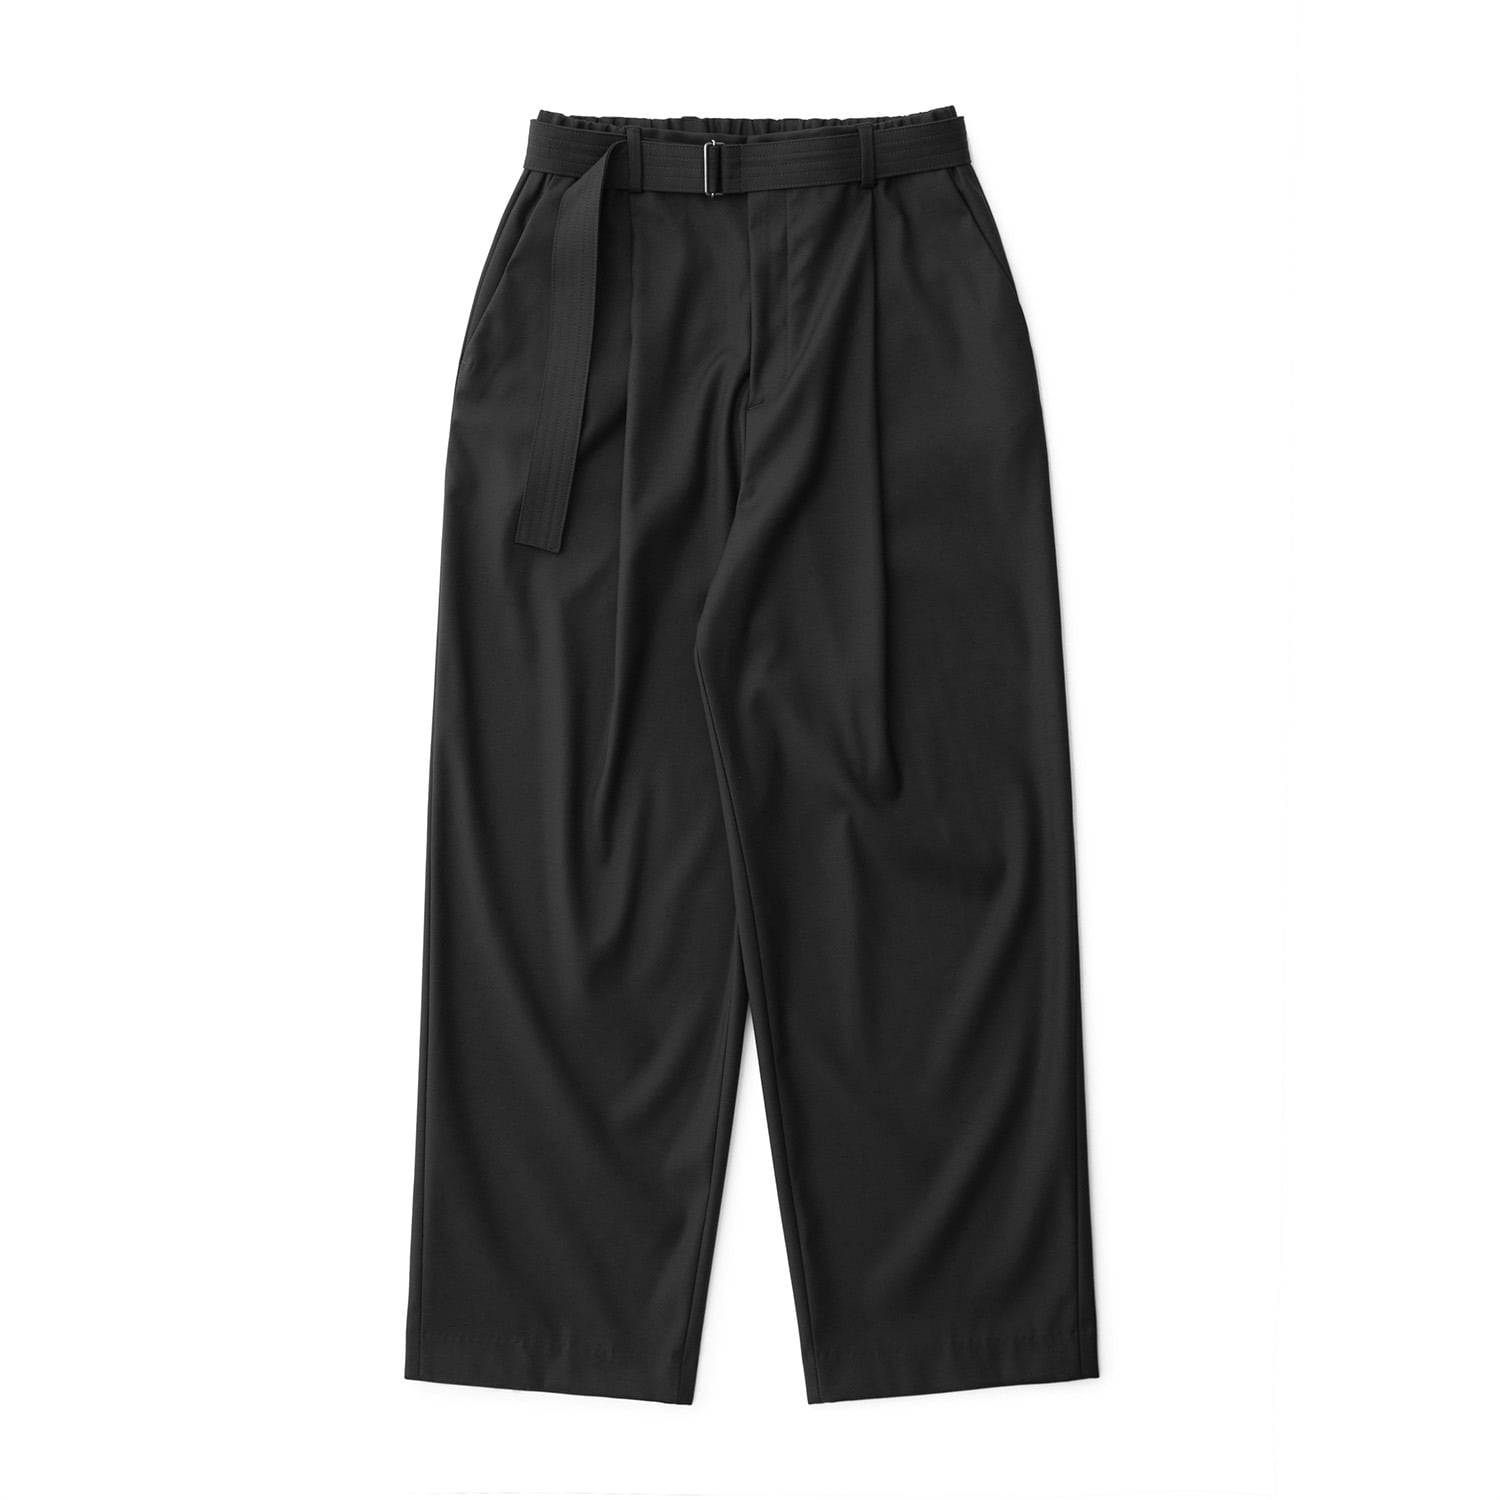 A/O 21SS Calm Banded Pants (Charcoal)